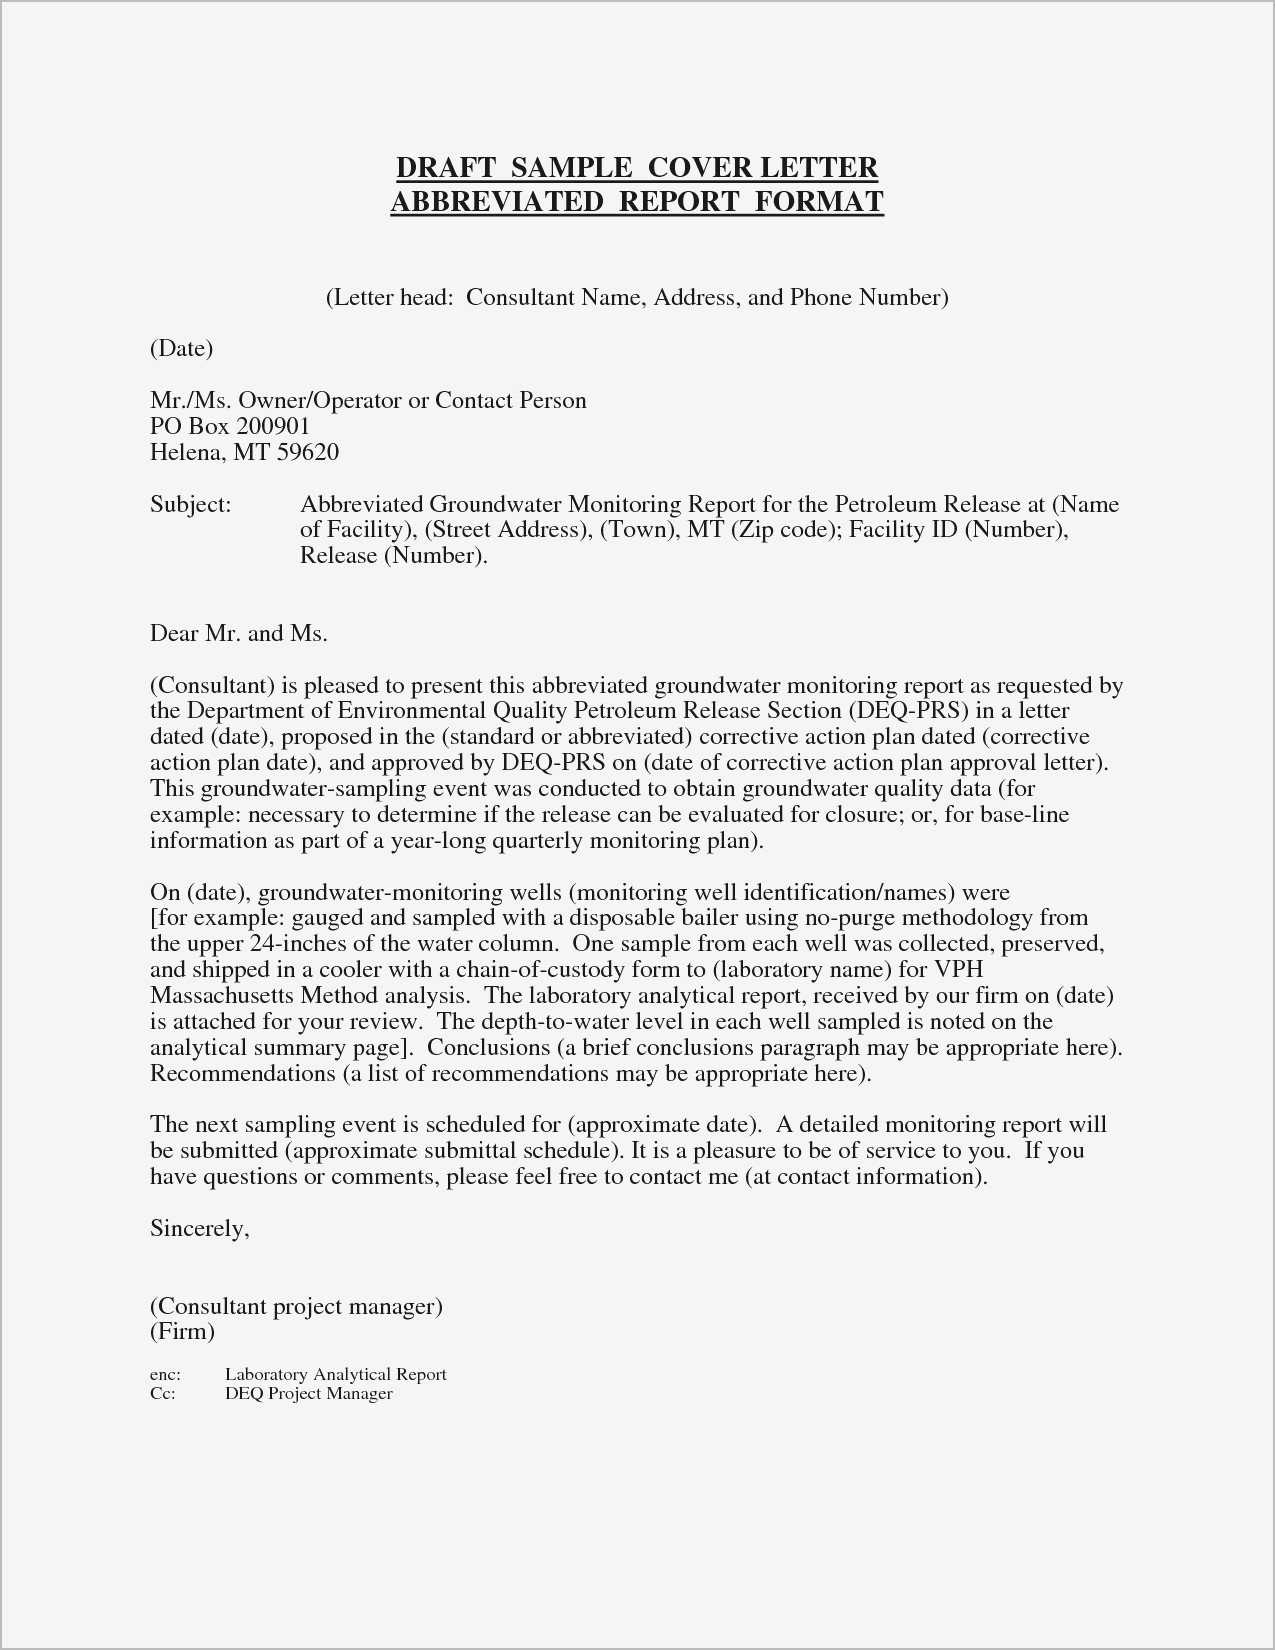 legal covering letter template Collection-legal covering letter template 19-a